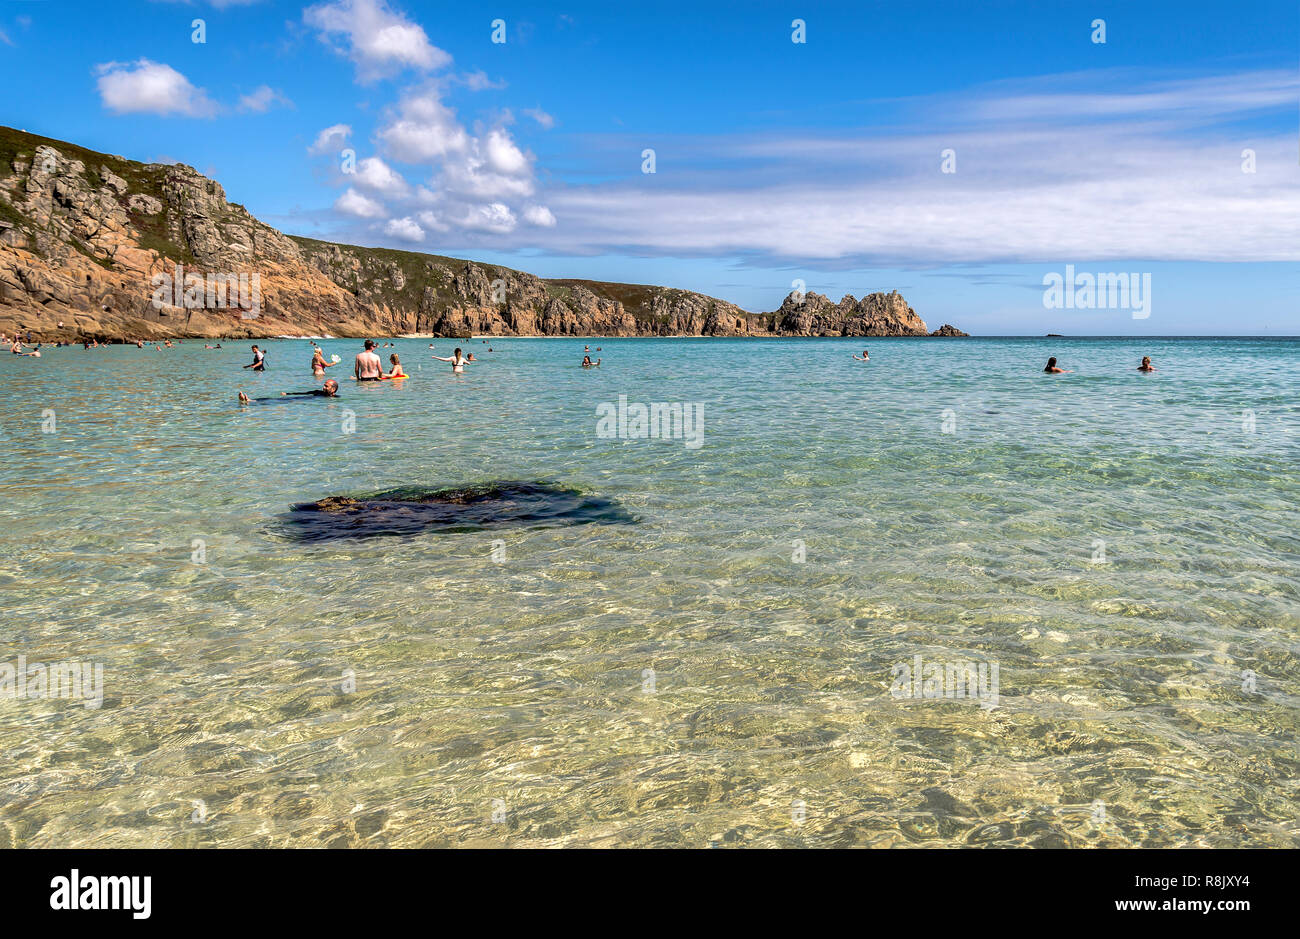 Swimming in clear water Porthcurno beach West Cornwall UK - Stock Image